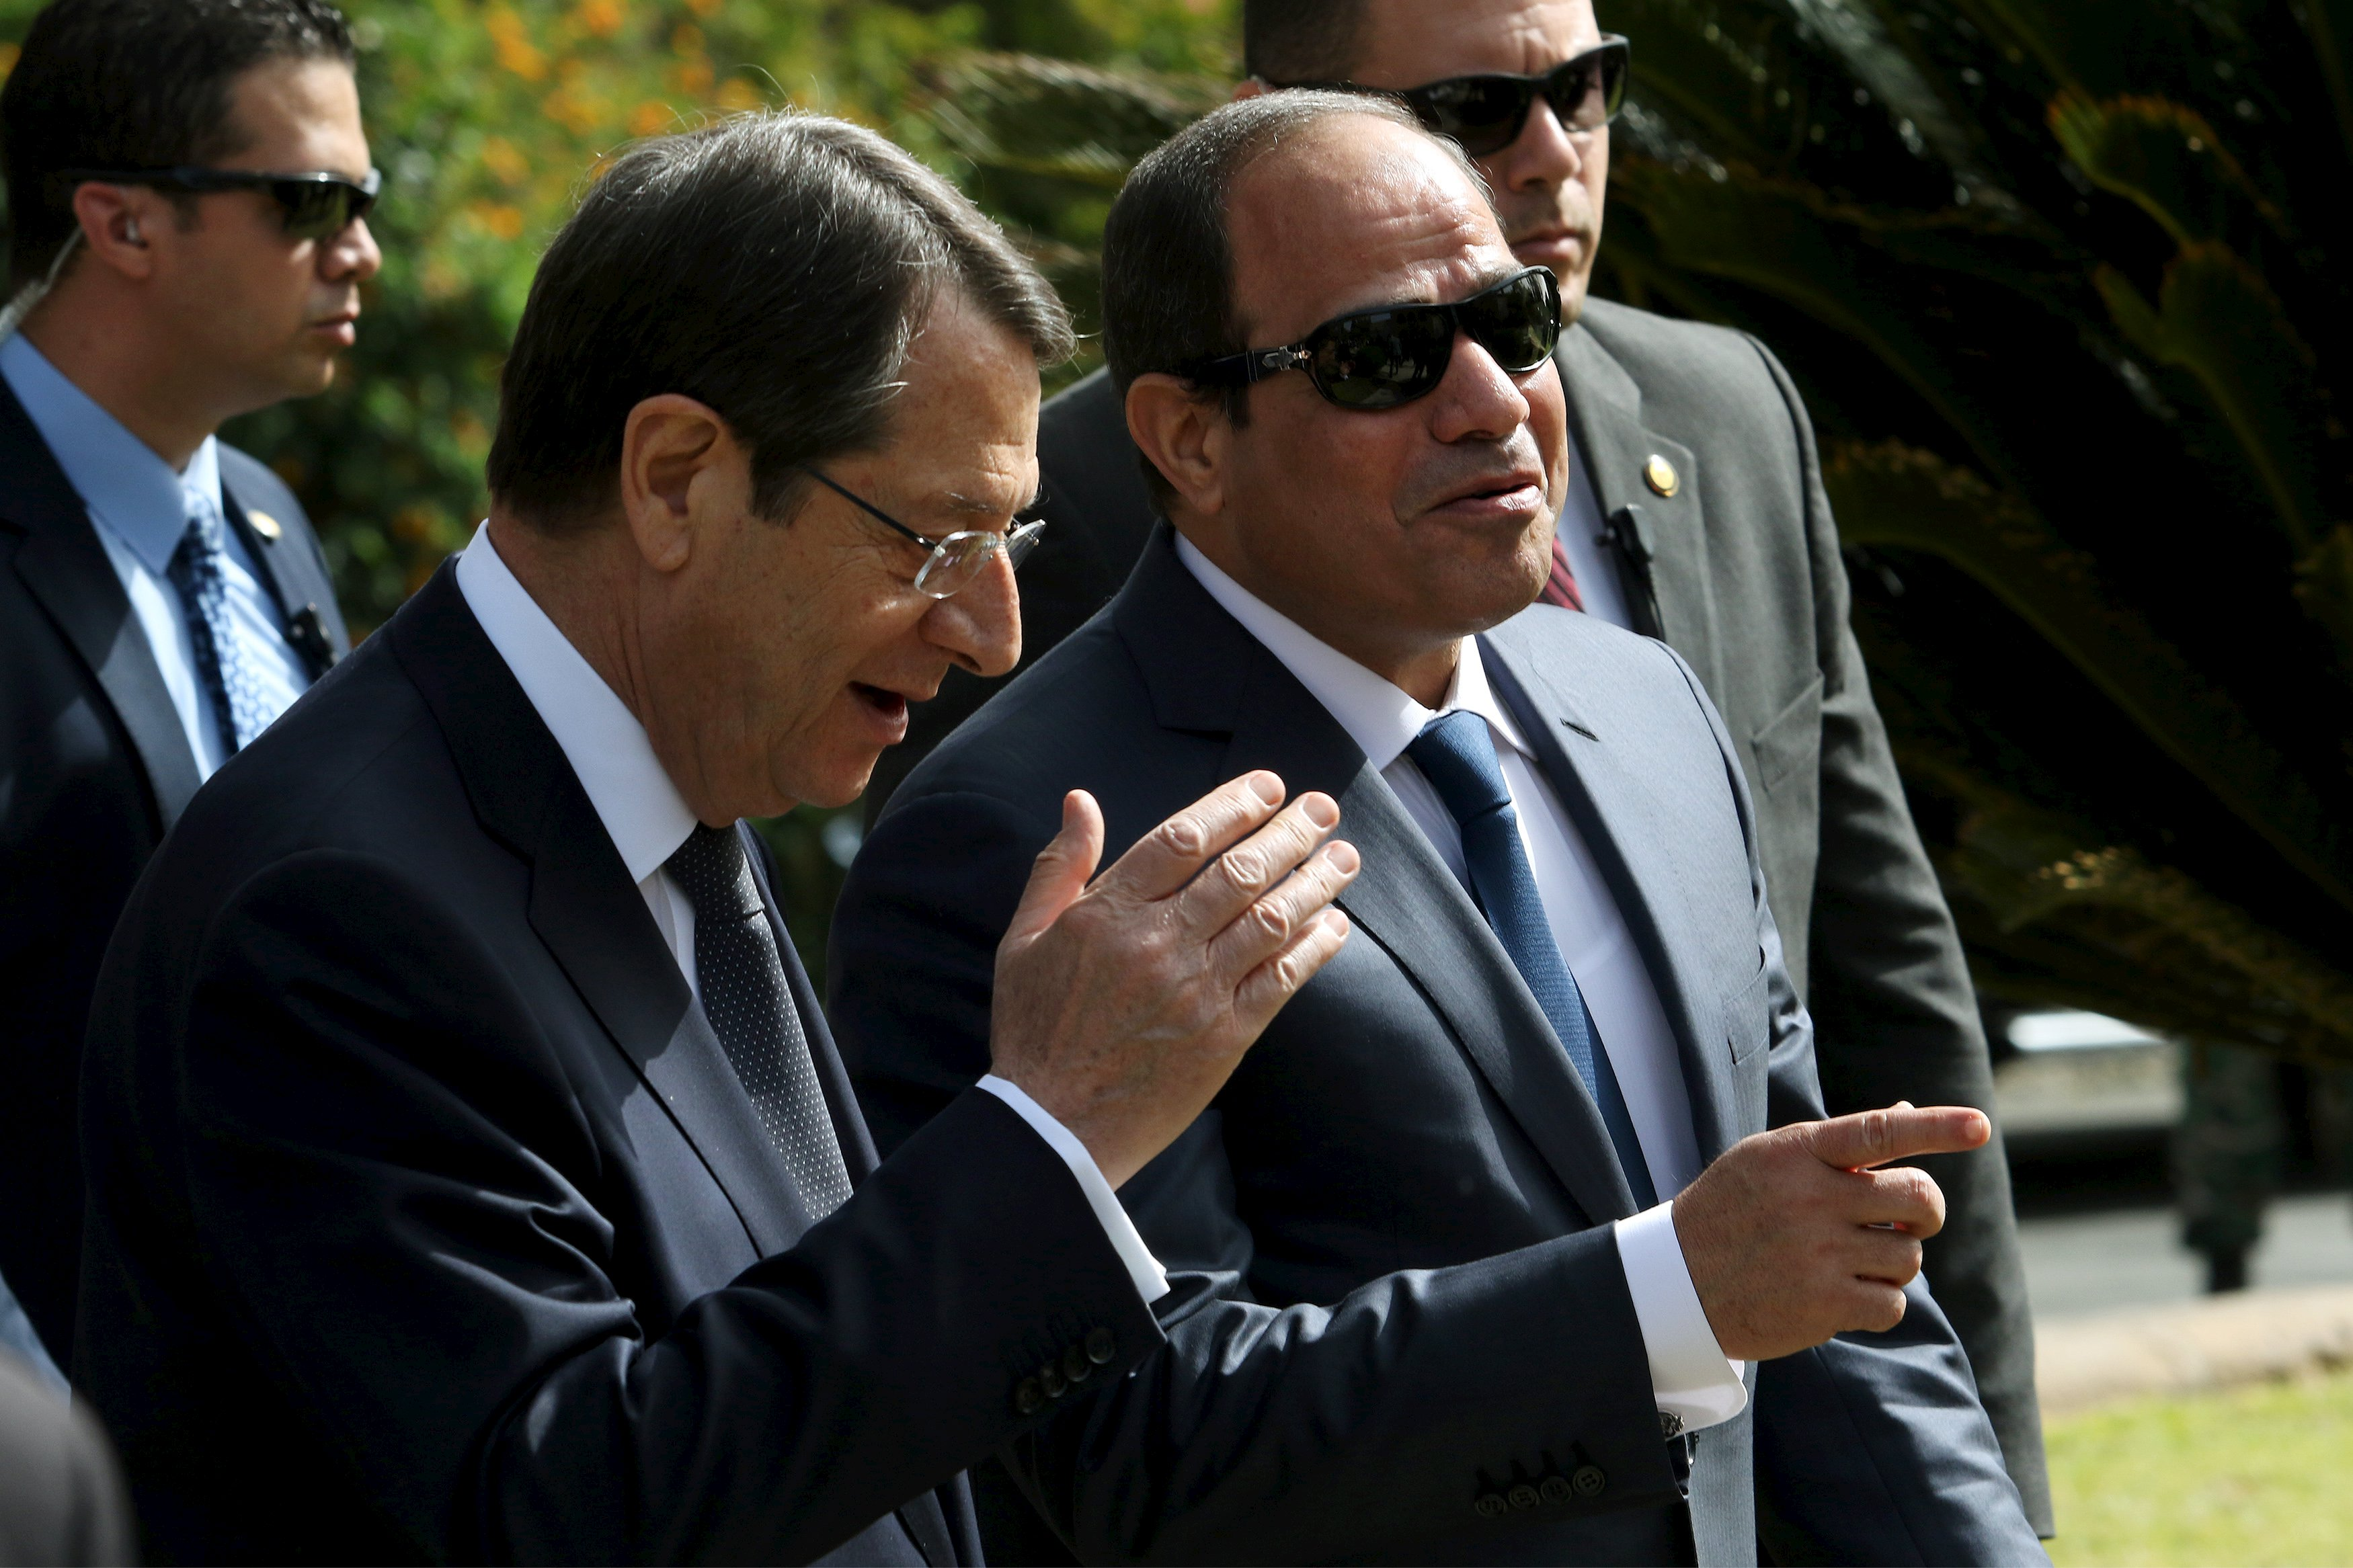 Cypriot President Nicos Anastasiades (L) and Egyptian President Abdel Fattah al-Sisi chat as they enter the Presidential Palace in Nicosia, April 29, 2015. Sisi was in Cyprus to discuss regional cooperation with Anastasiades and Greek Prime Minister Alexis Tsipras.  REUTERS/Yiannis Kourtoglou